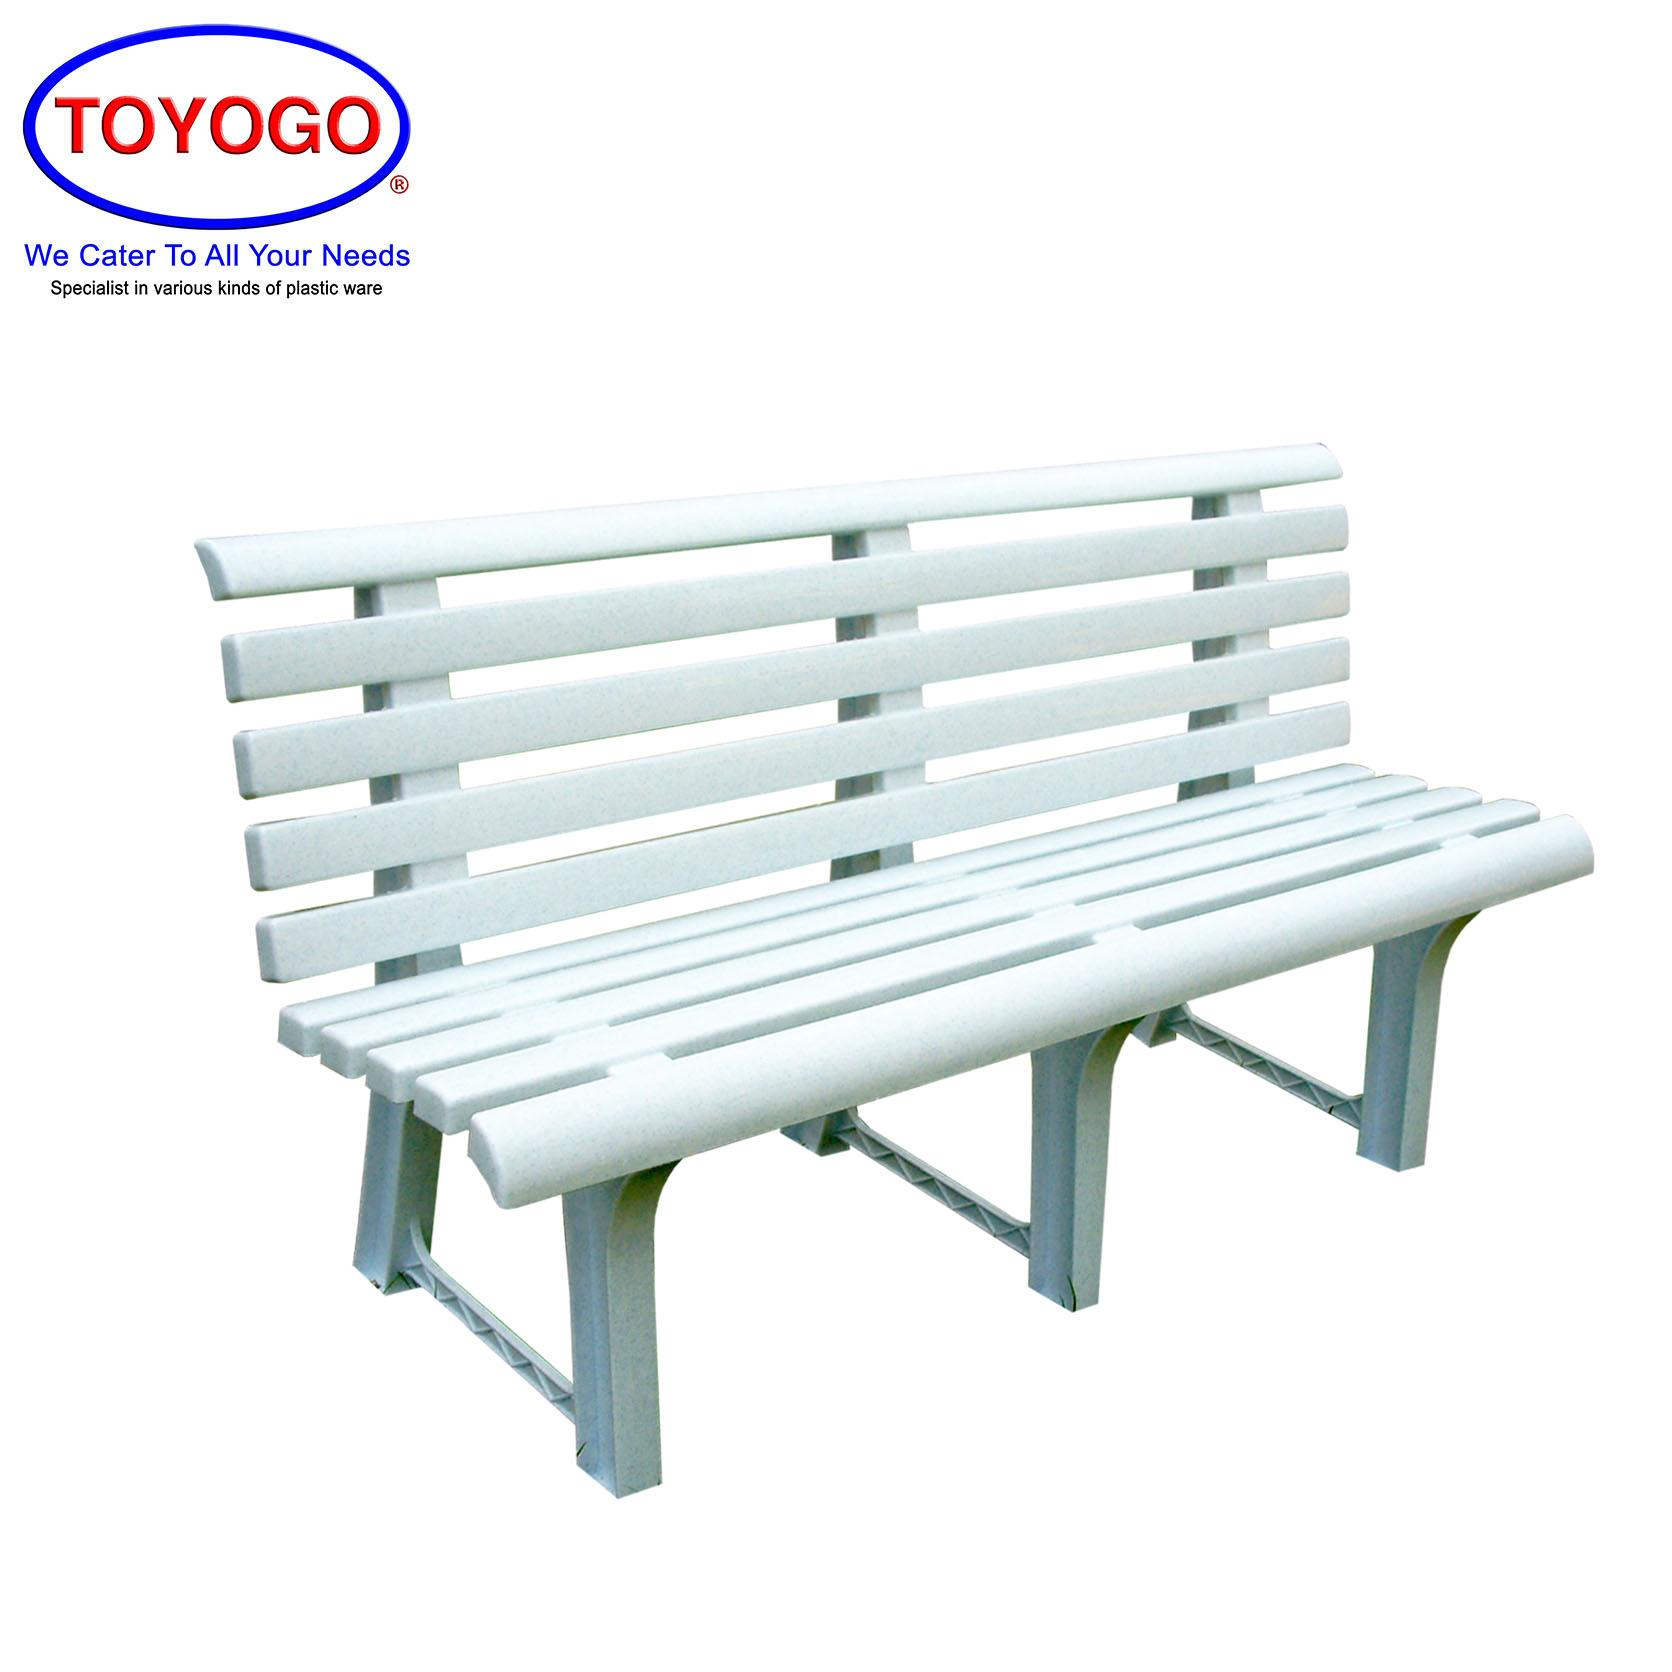 Toyogo DIY Long Bench (473) W21